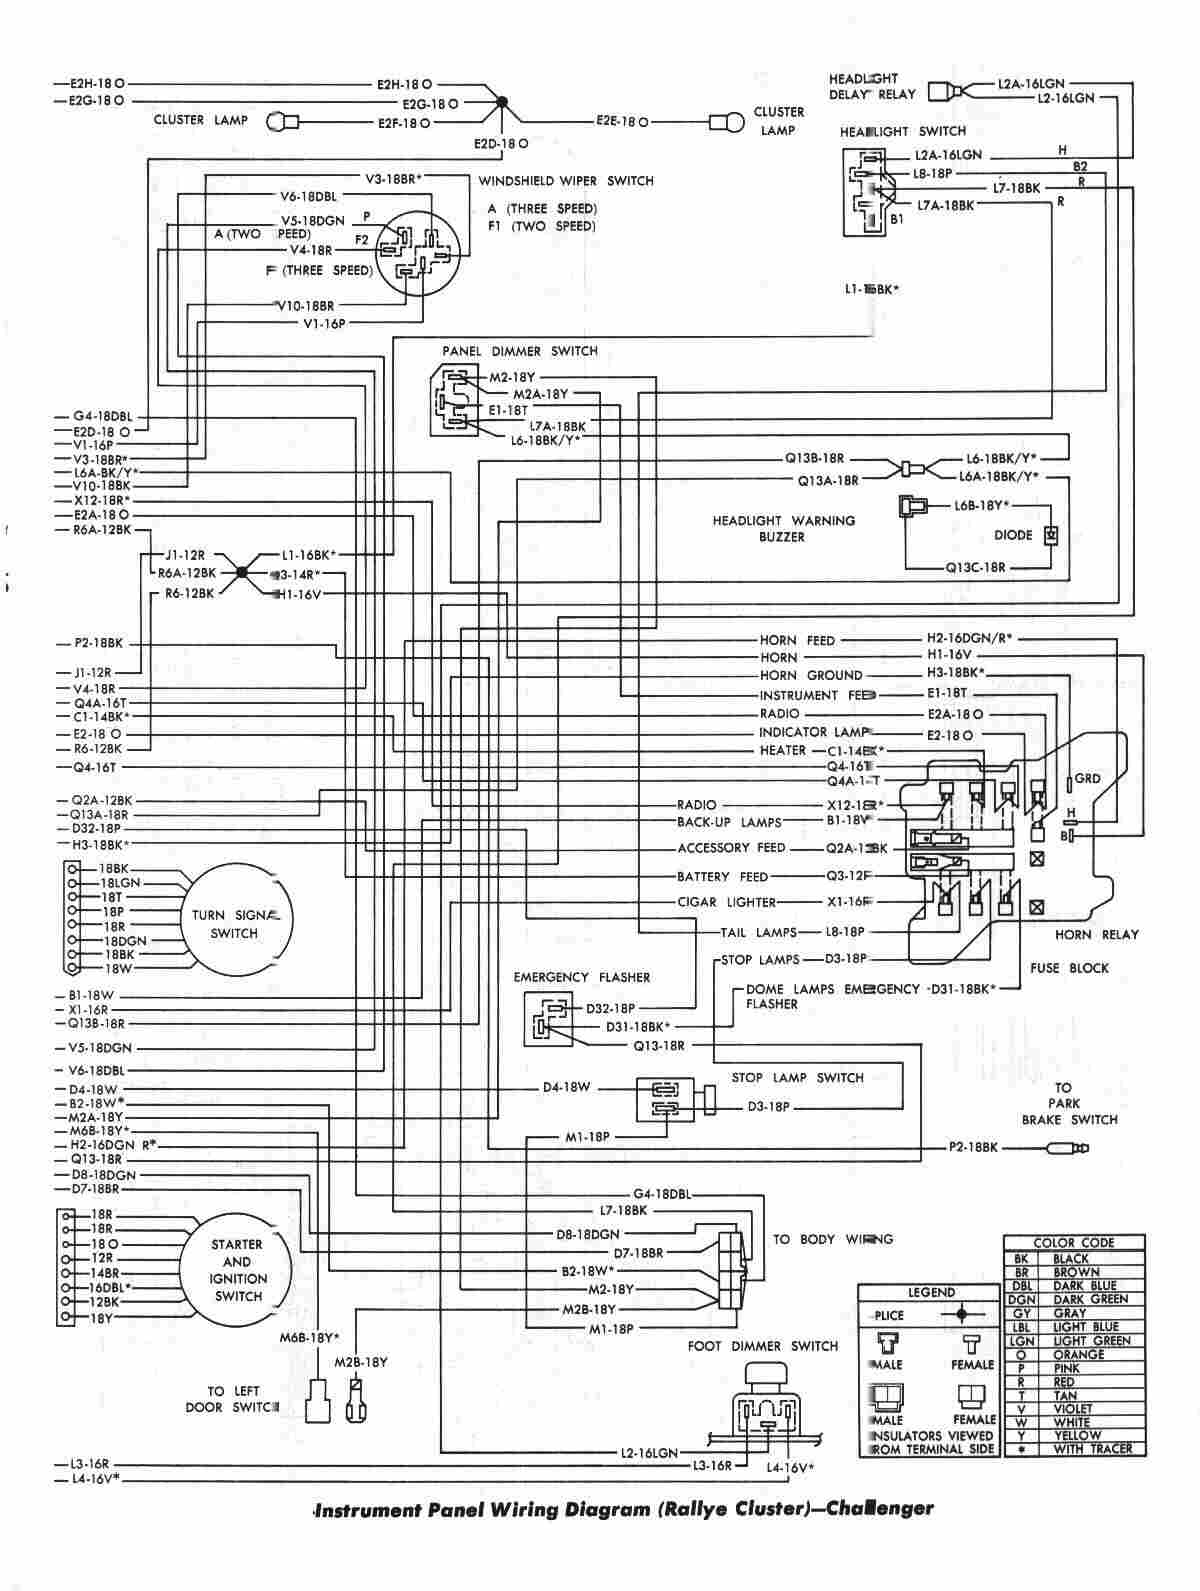 Dodge+Challenger+1970+Instrument+Panel+Wiring+Diagram+(Rallye+Cluster) dodge challenger 1970 instrument panel wiring diagram (rallye 1970 dodge challenger wiring diagram at webbmarketing.co